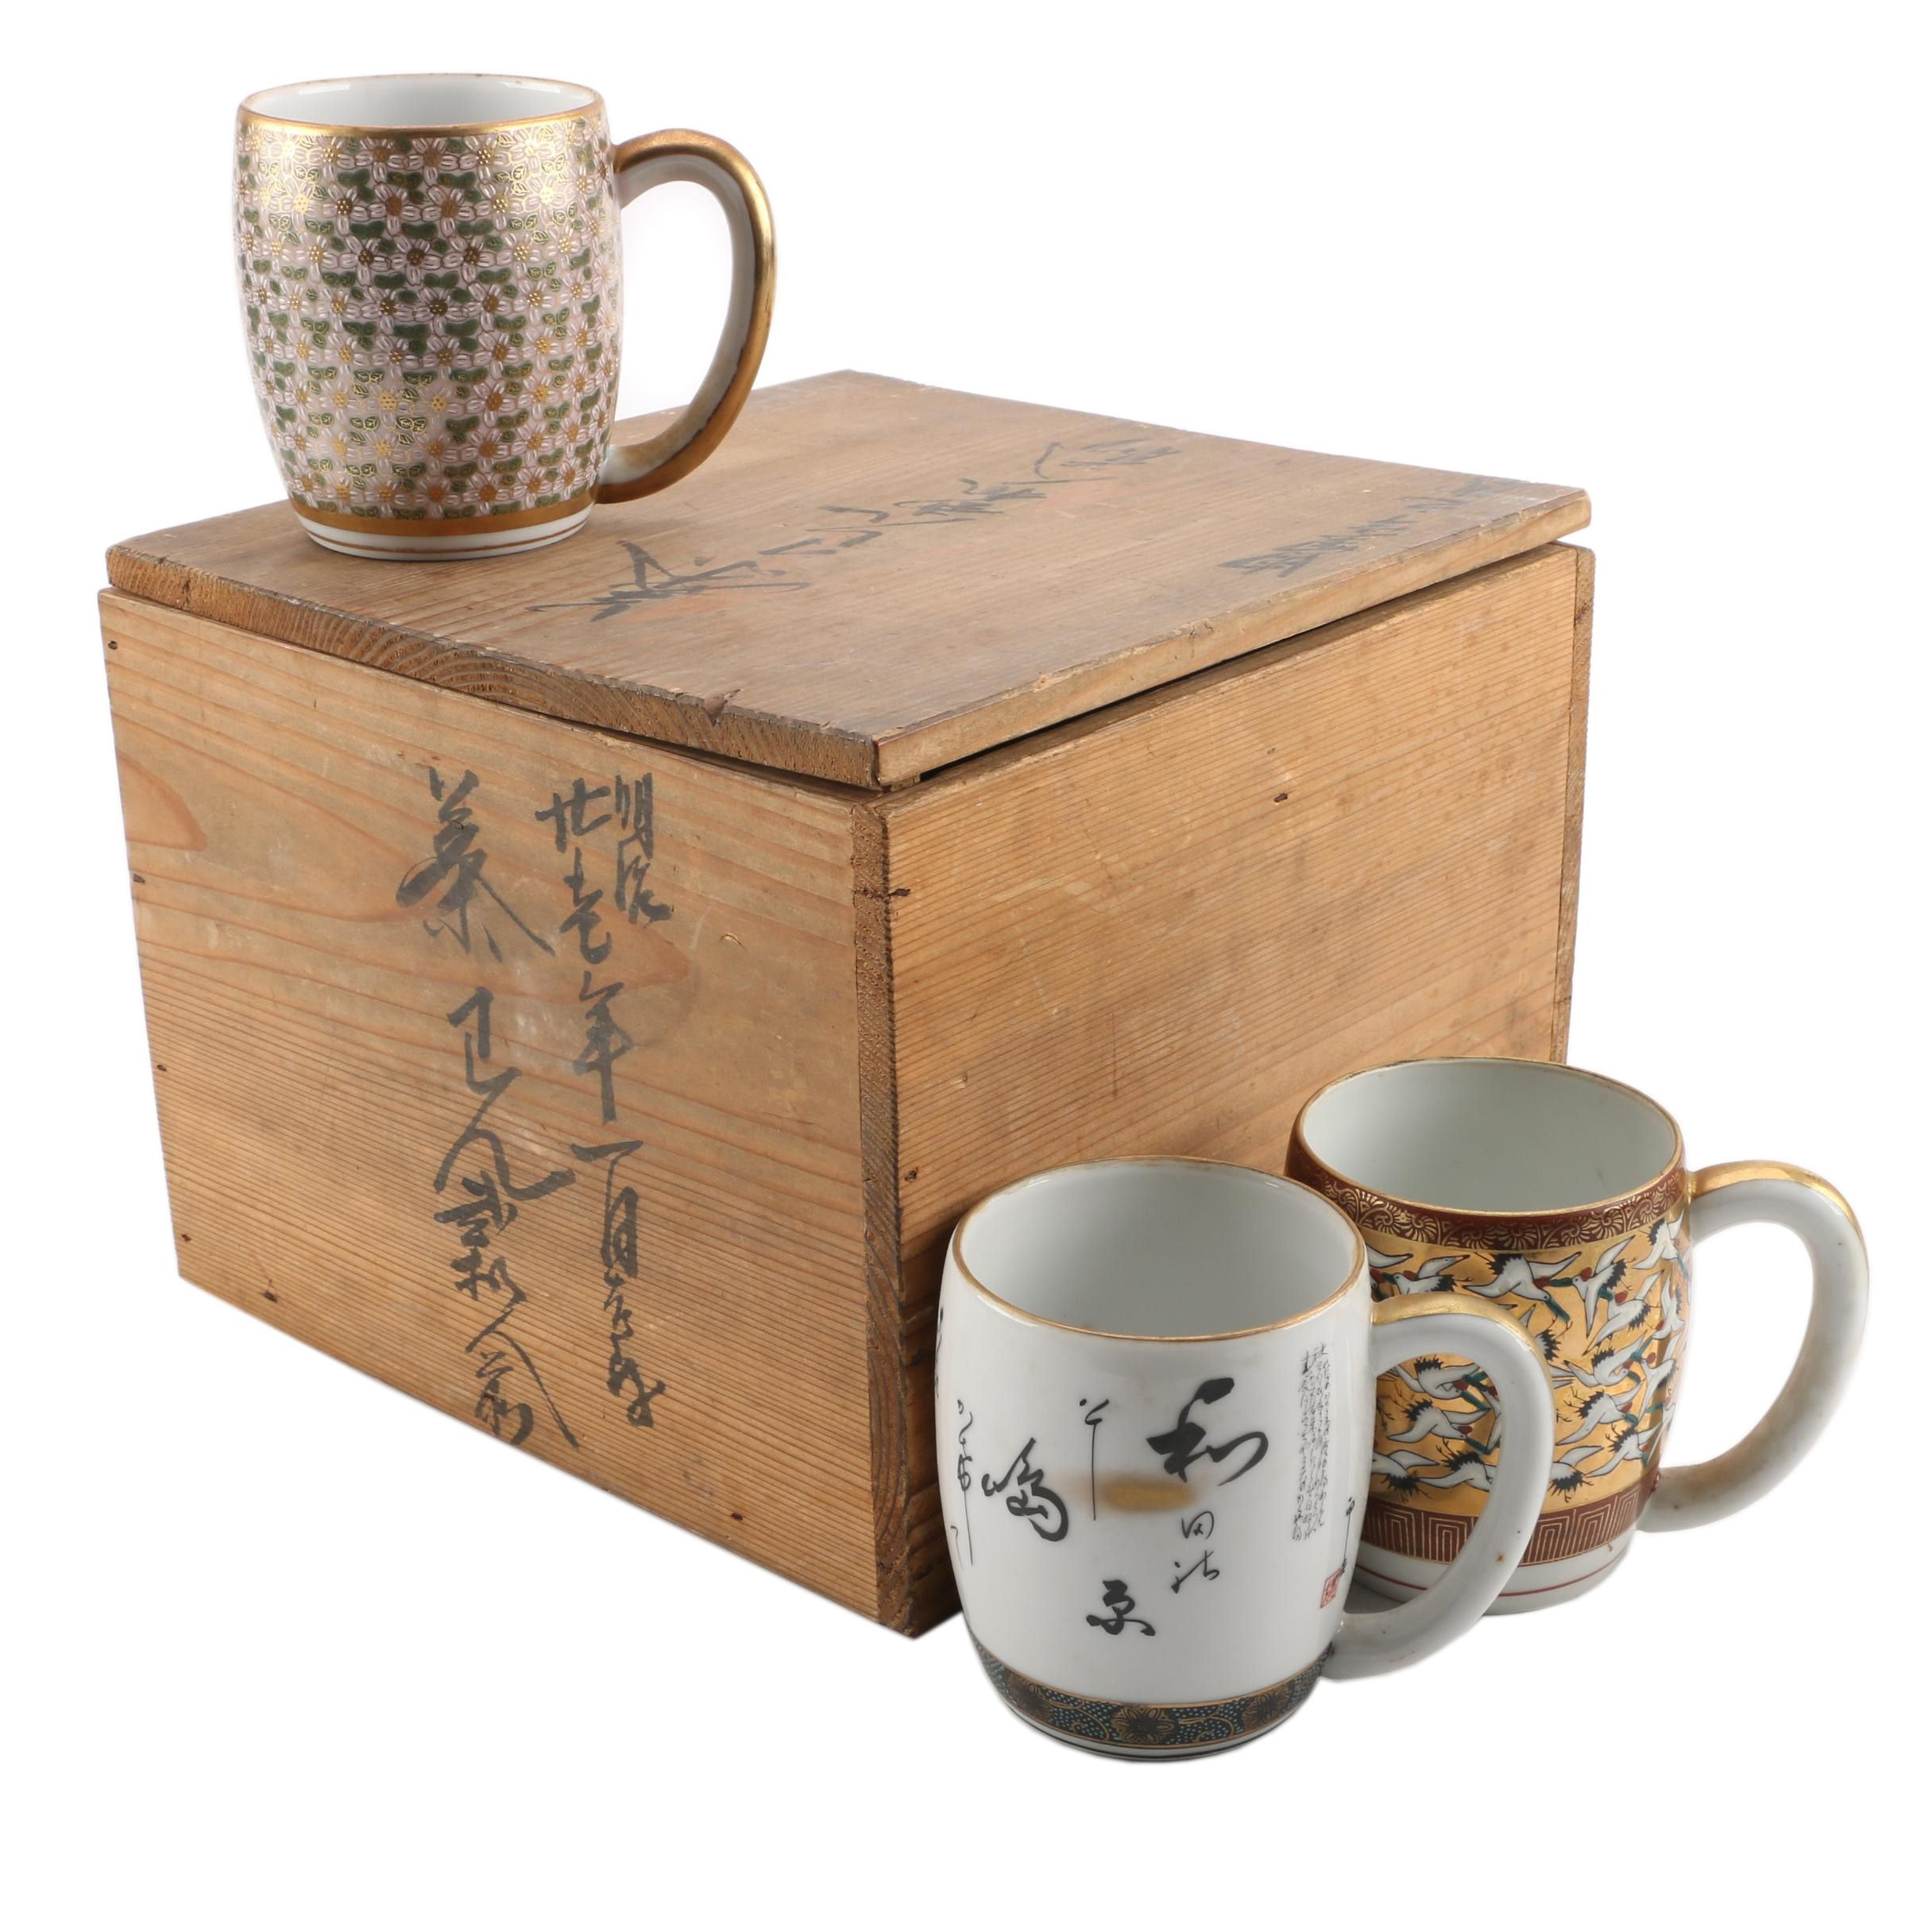 Japanese Porcelain Mugs with Wooden Crate